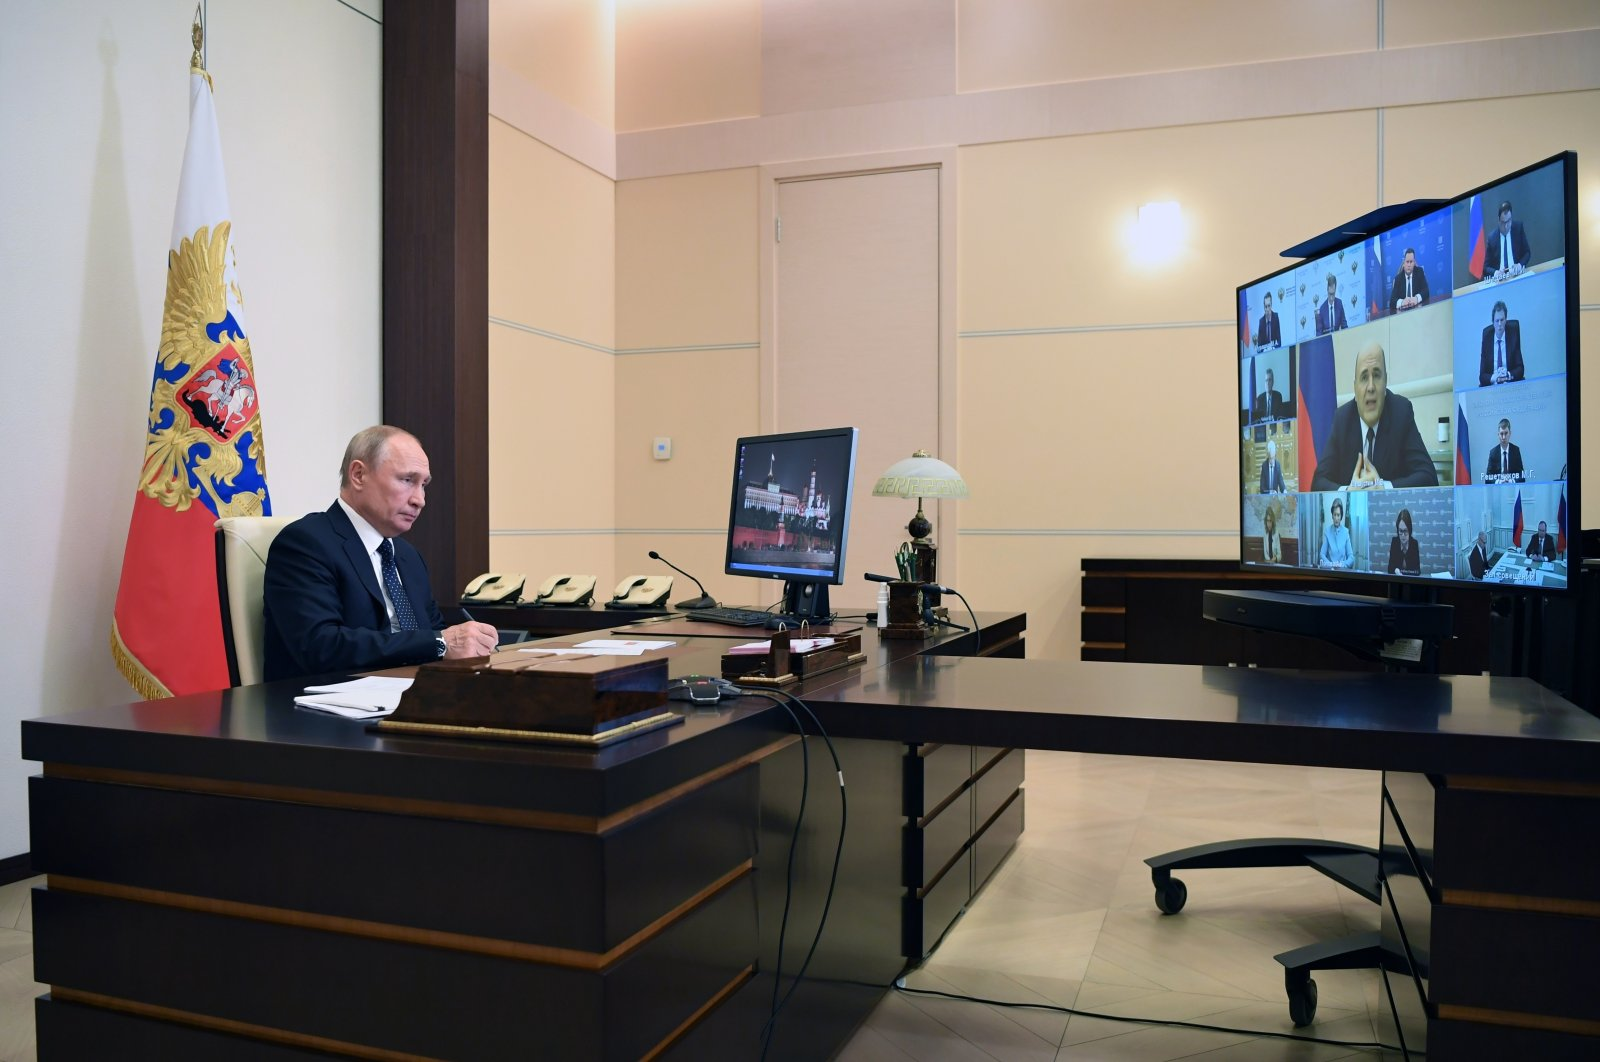 Russian President Vladimir Putin takes part in a videoconference with Cabinet officials, with Russian Prime Minister Mikhail Mishustin, who has fully resumed his duties after recovering from the coronavirus in the center of the screen, at the Novo-Ogaryovo residence outside Moscow, Russia, May 19, 2020. (Kremlin Pool Photo via AP Photo)